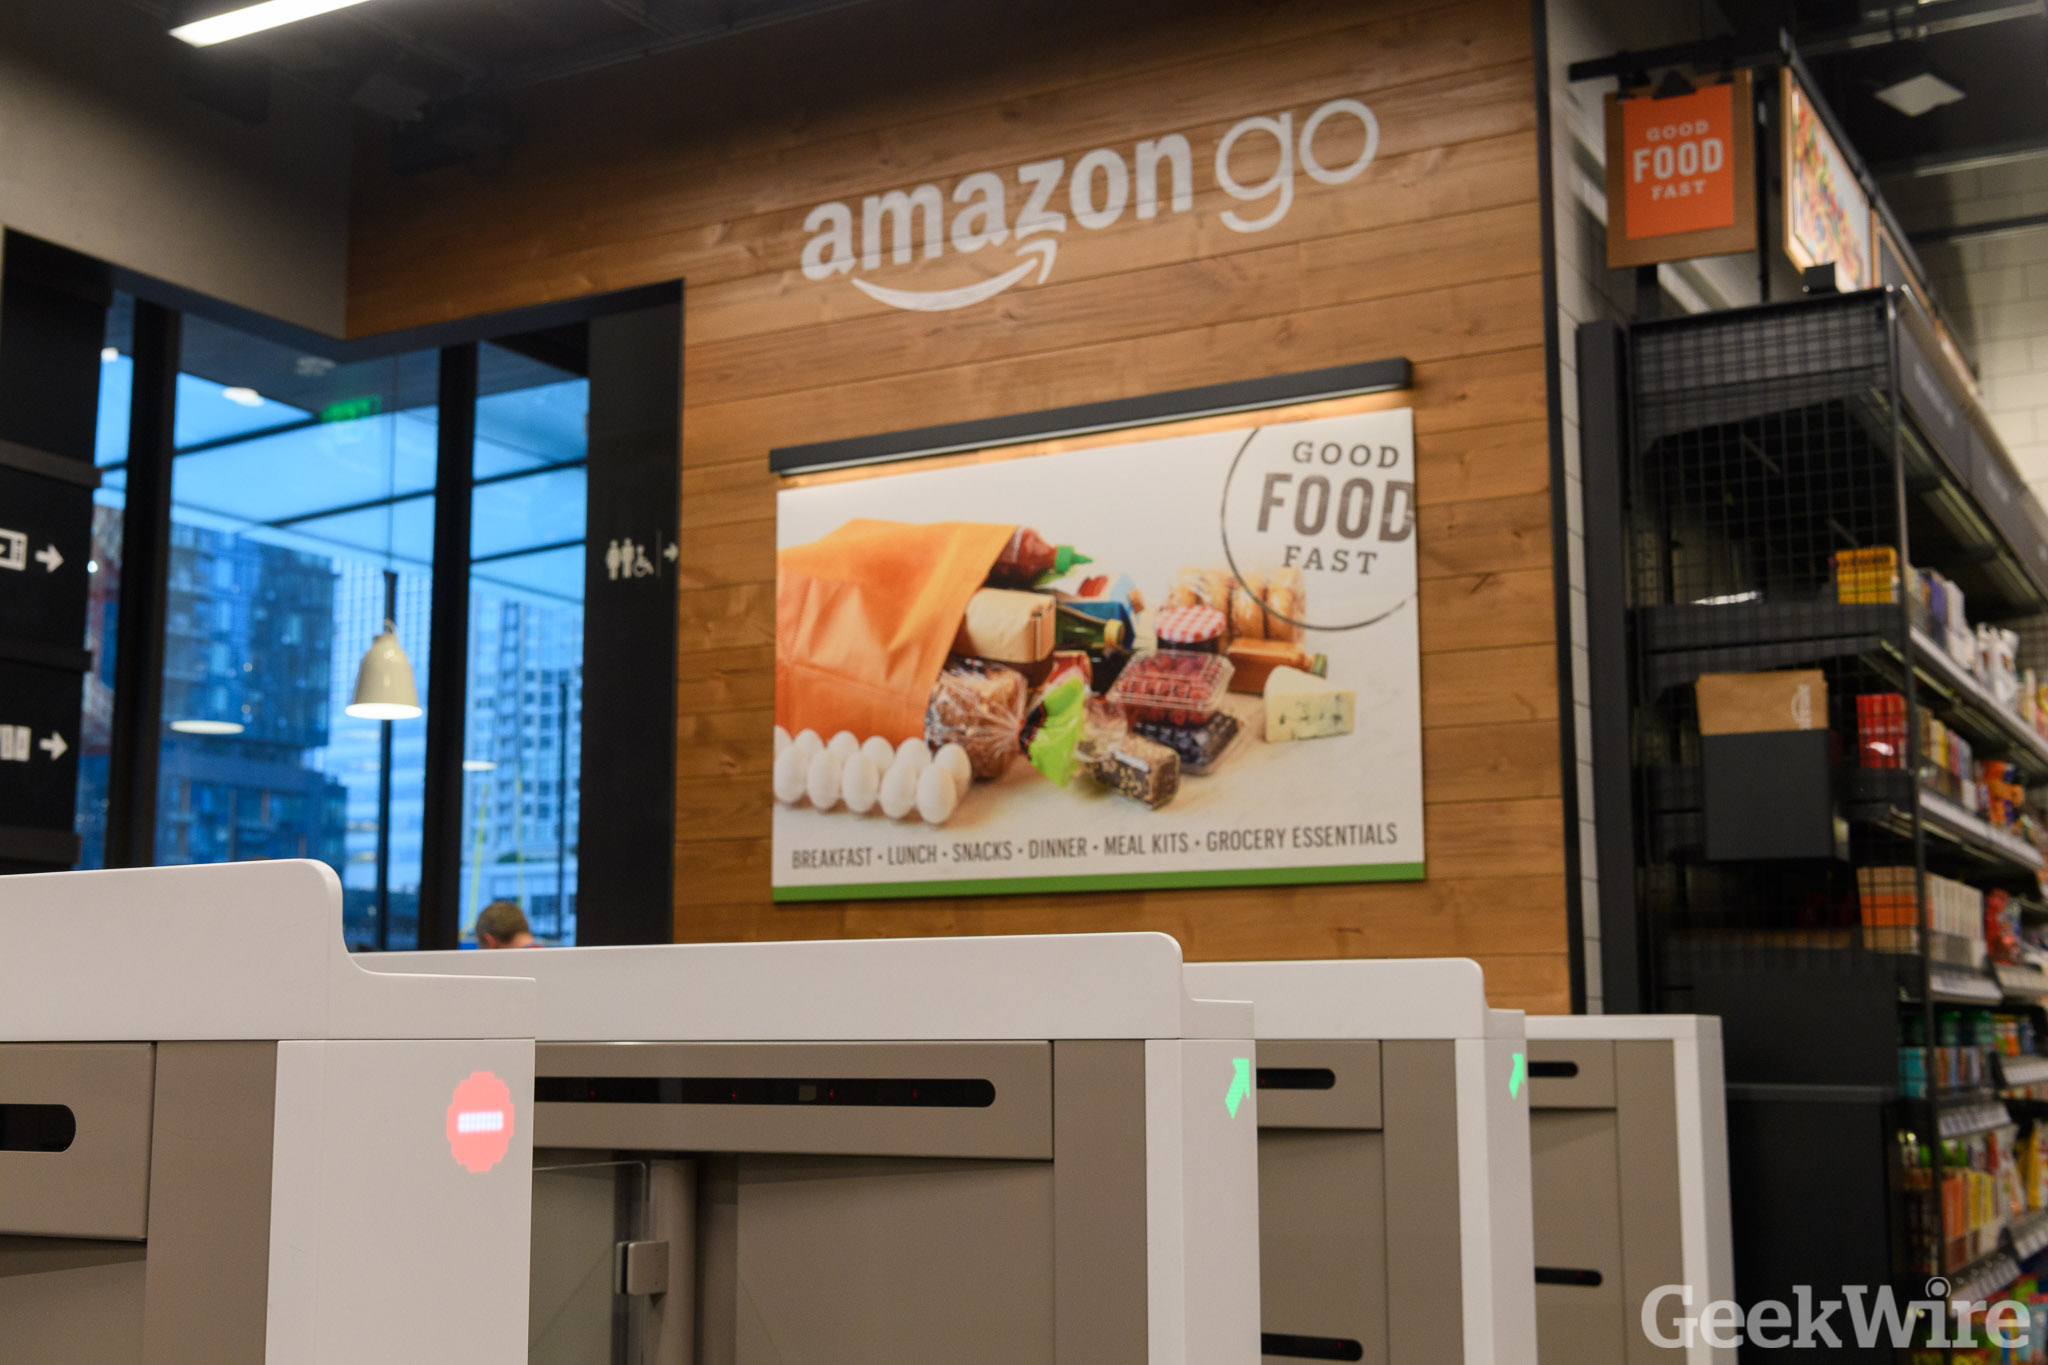 Amazon Go To Open In Chicago And San Francisco Expanding Cashier